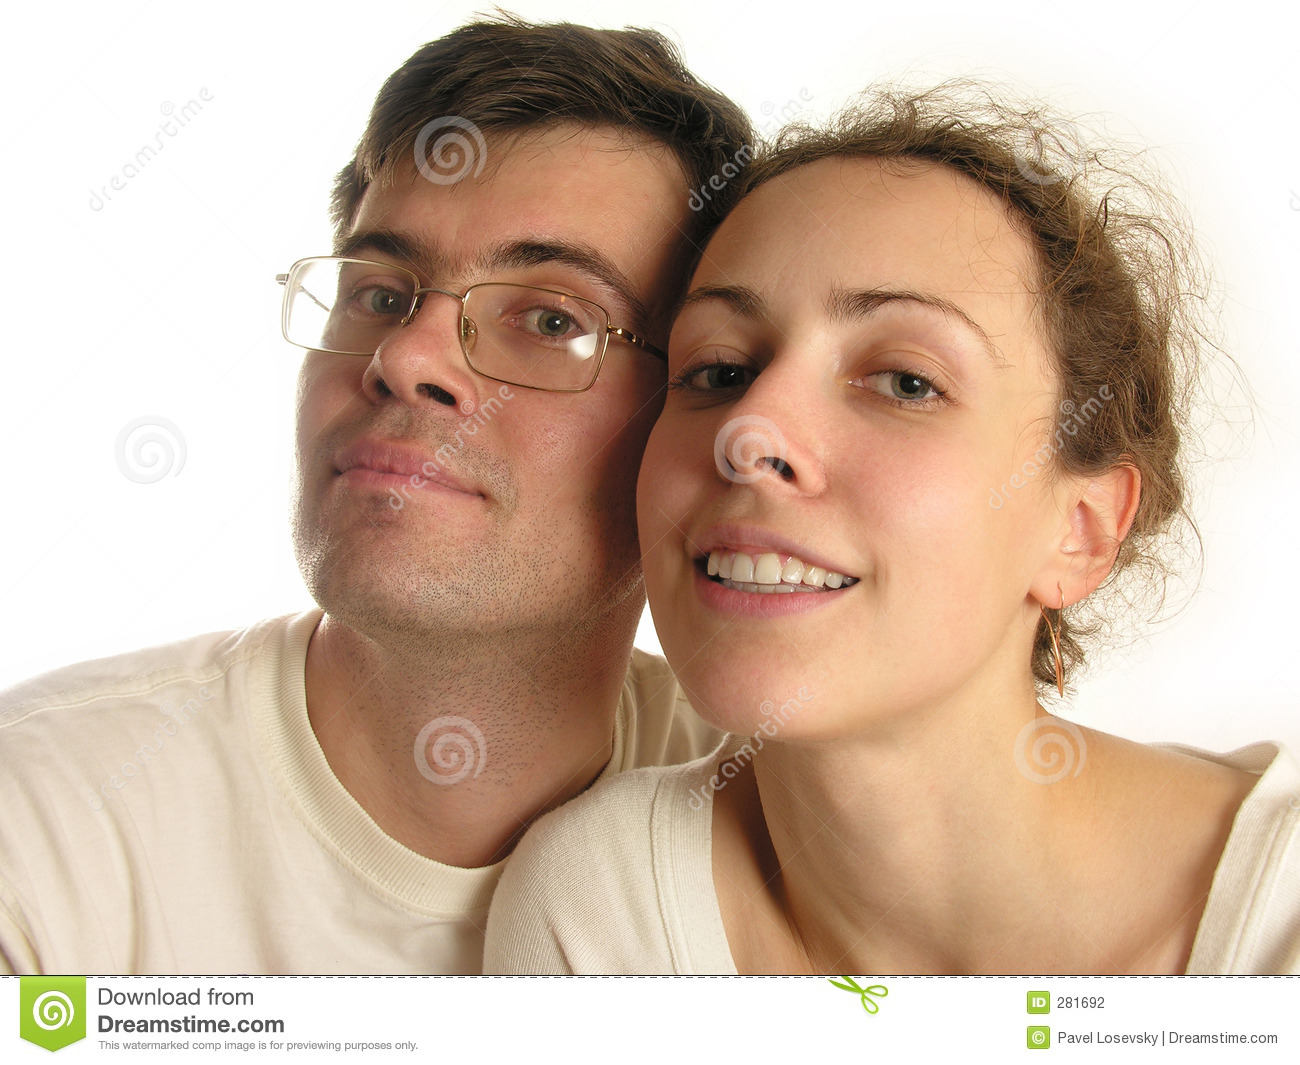 Couple faces isolated